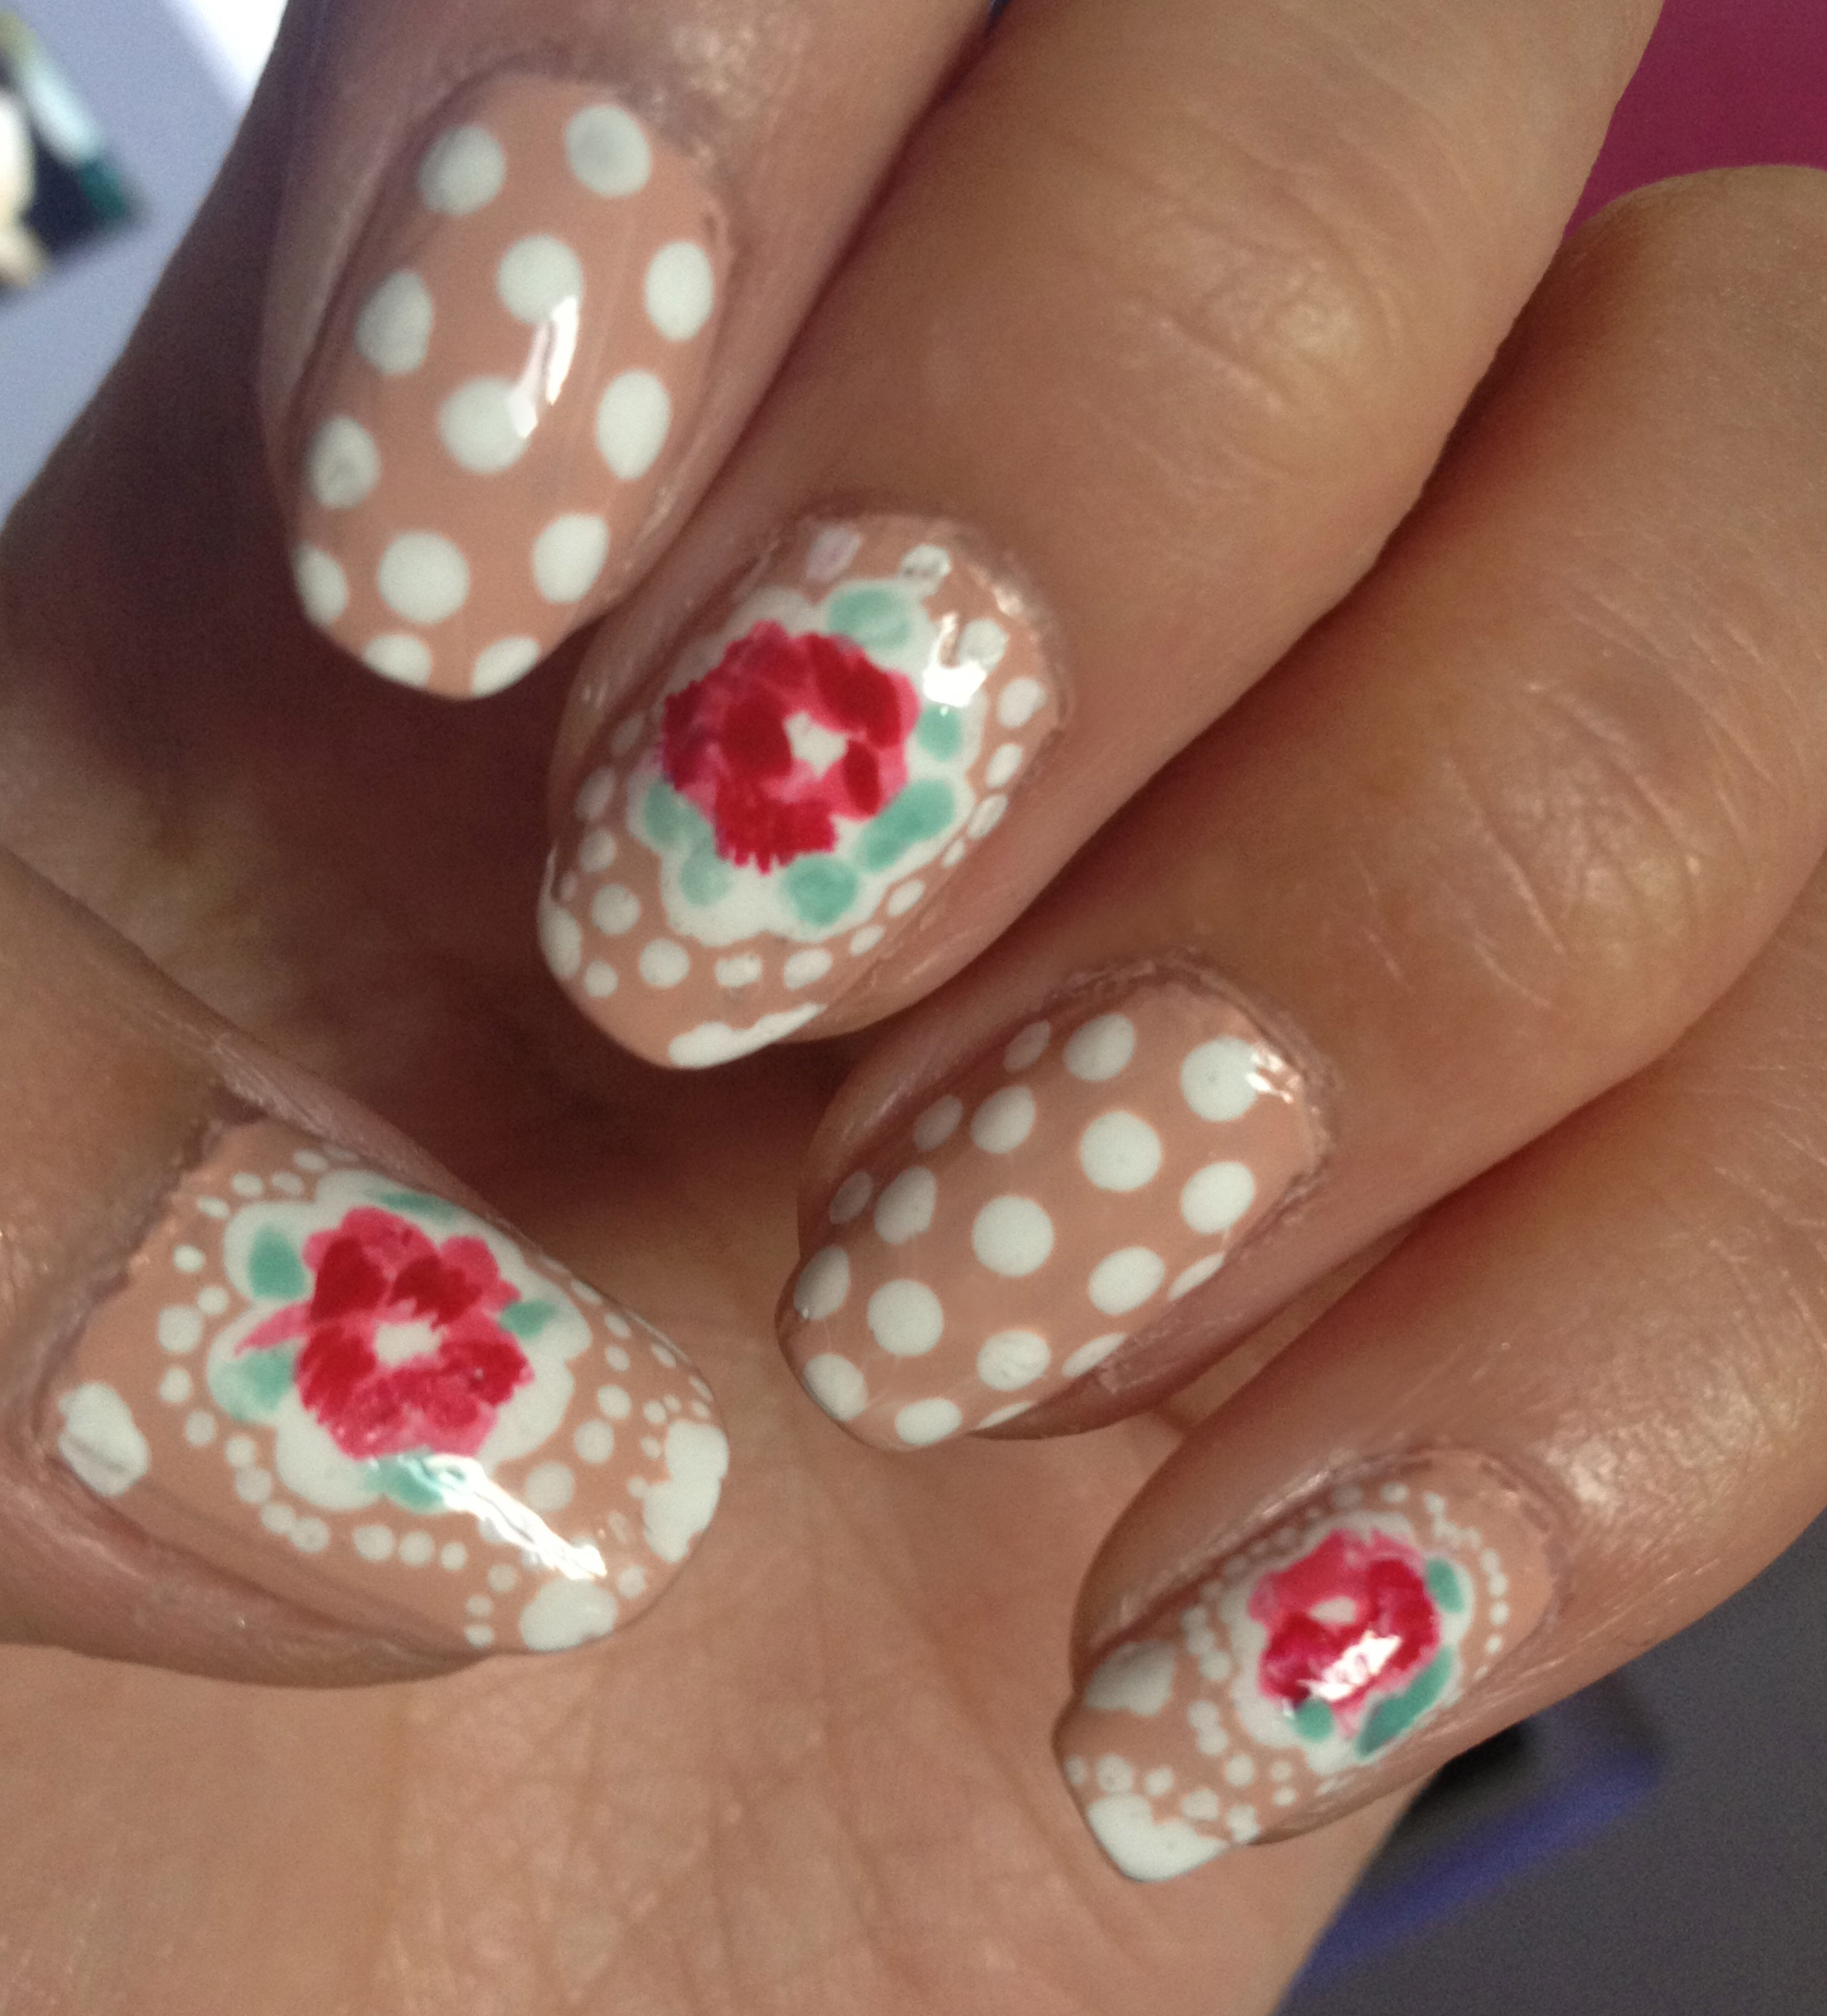 Nail Arts By Rozemist Cath Kidston Vintage Inspired: ARTSY WEDNESDAY: PRINT/ PATTERN INSPIRED NAILS